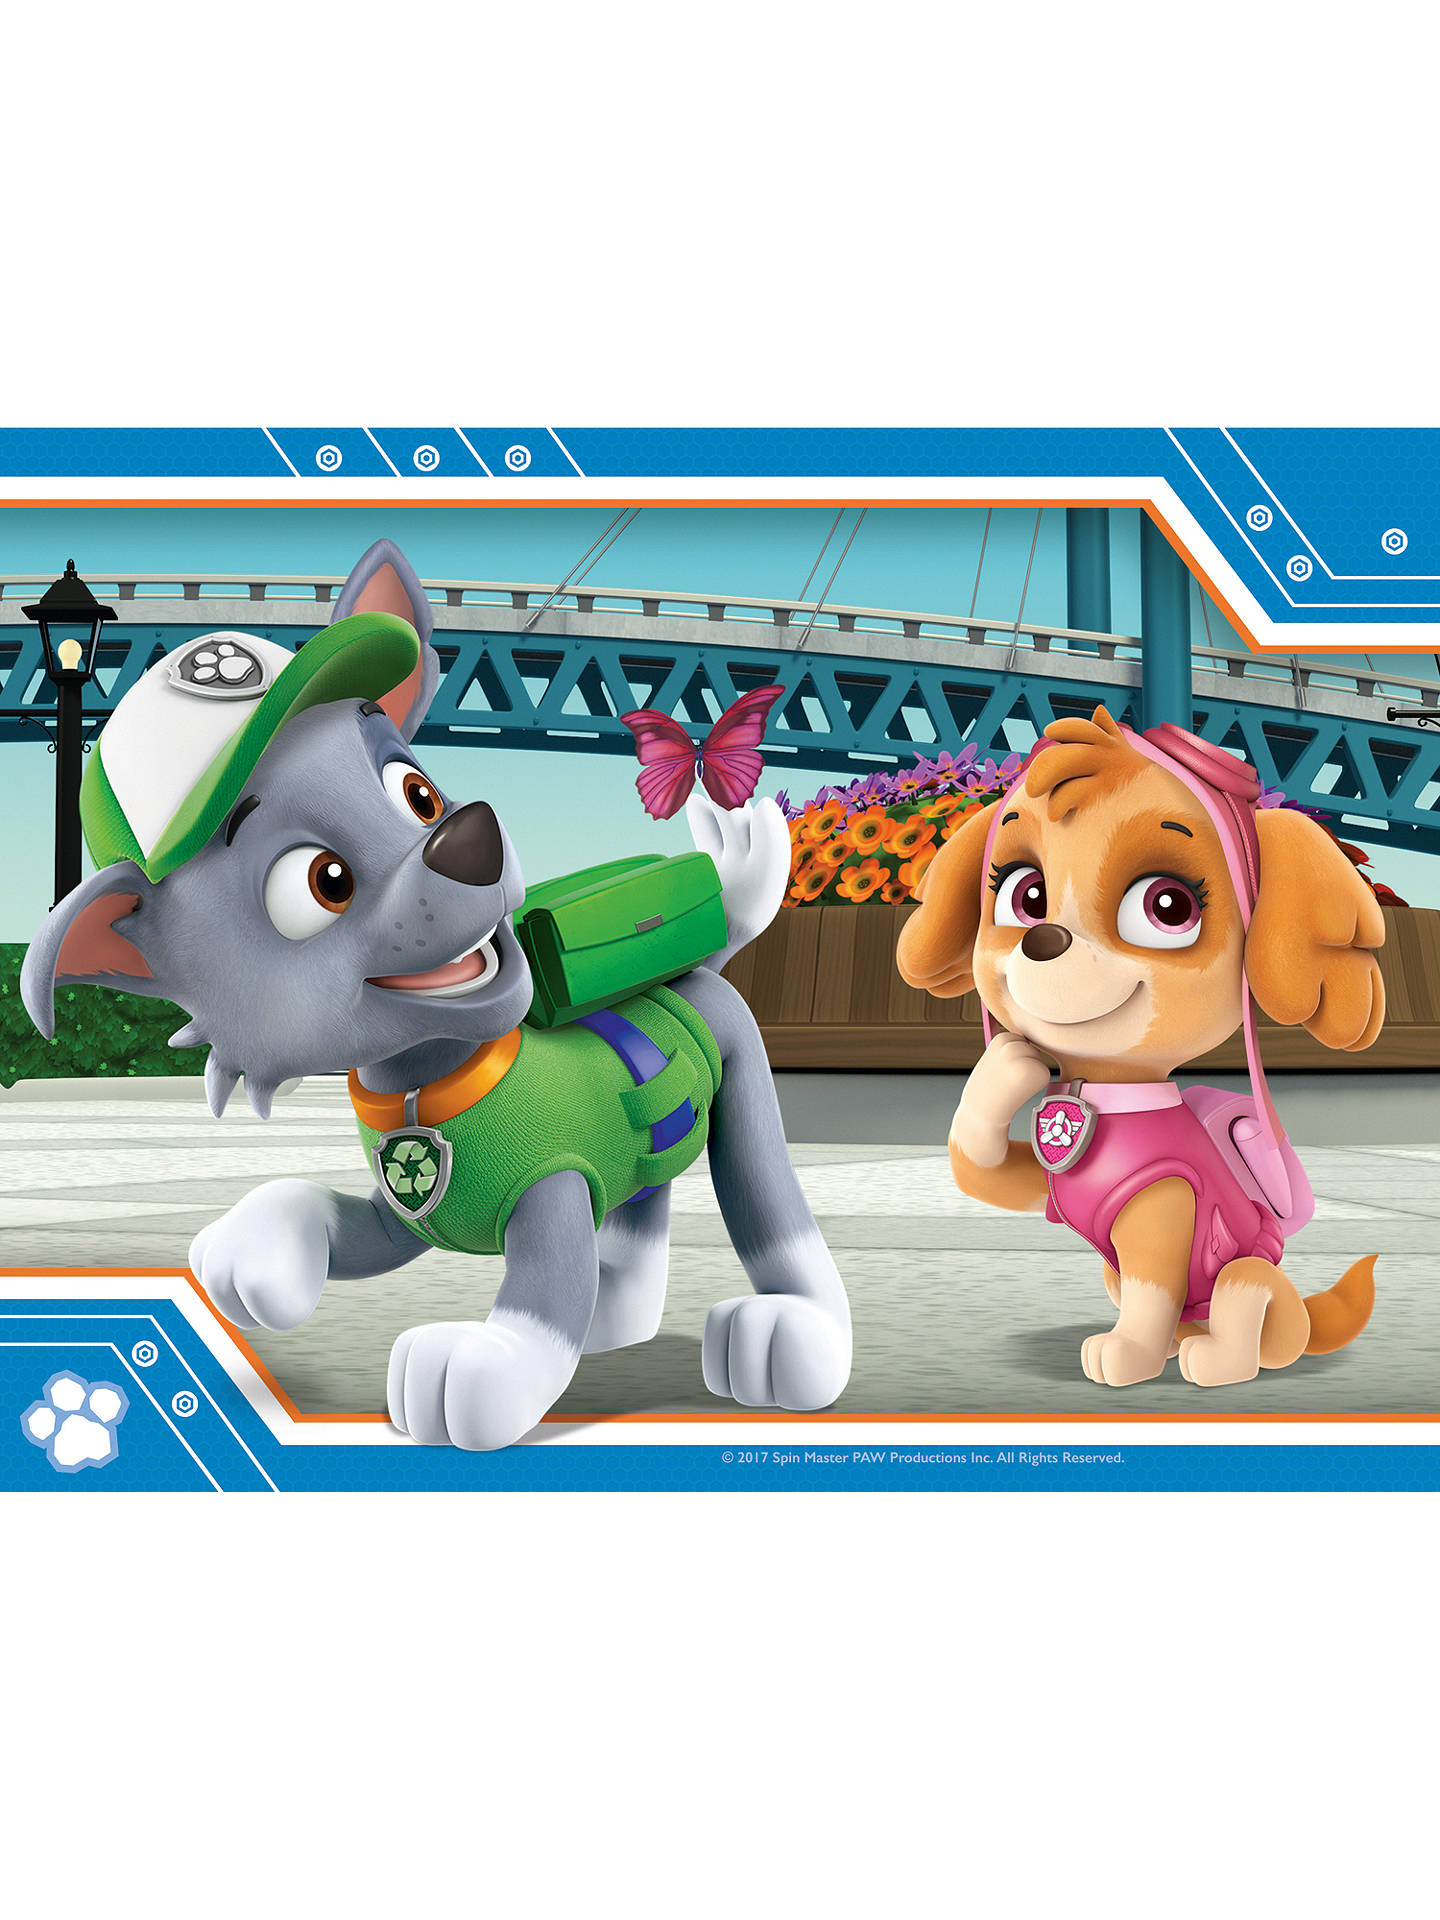 Buy Paw Patrol 4 In a Box Jigsaw Puzzle, 72 Pieces Online at johnlewis.com